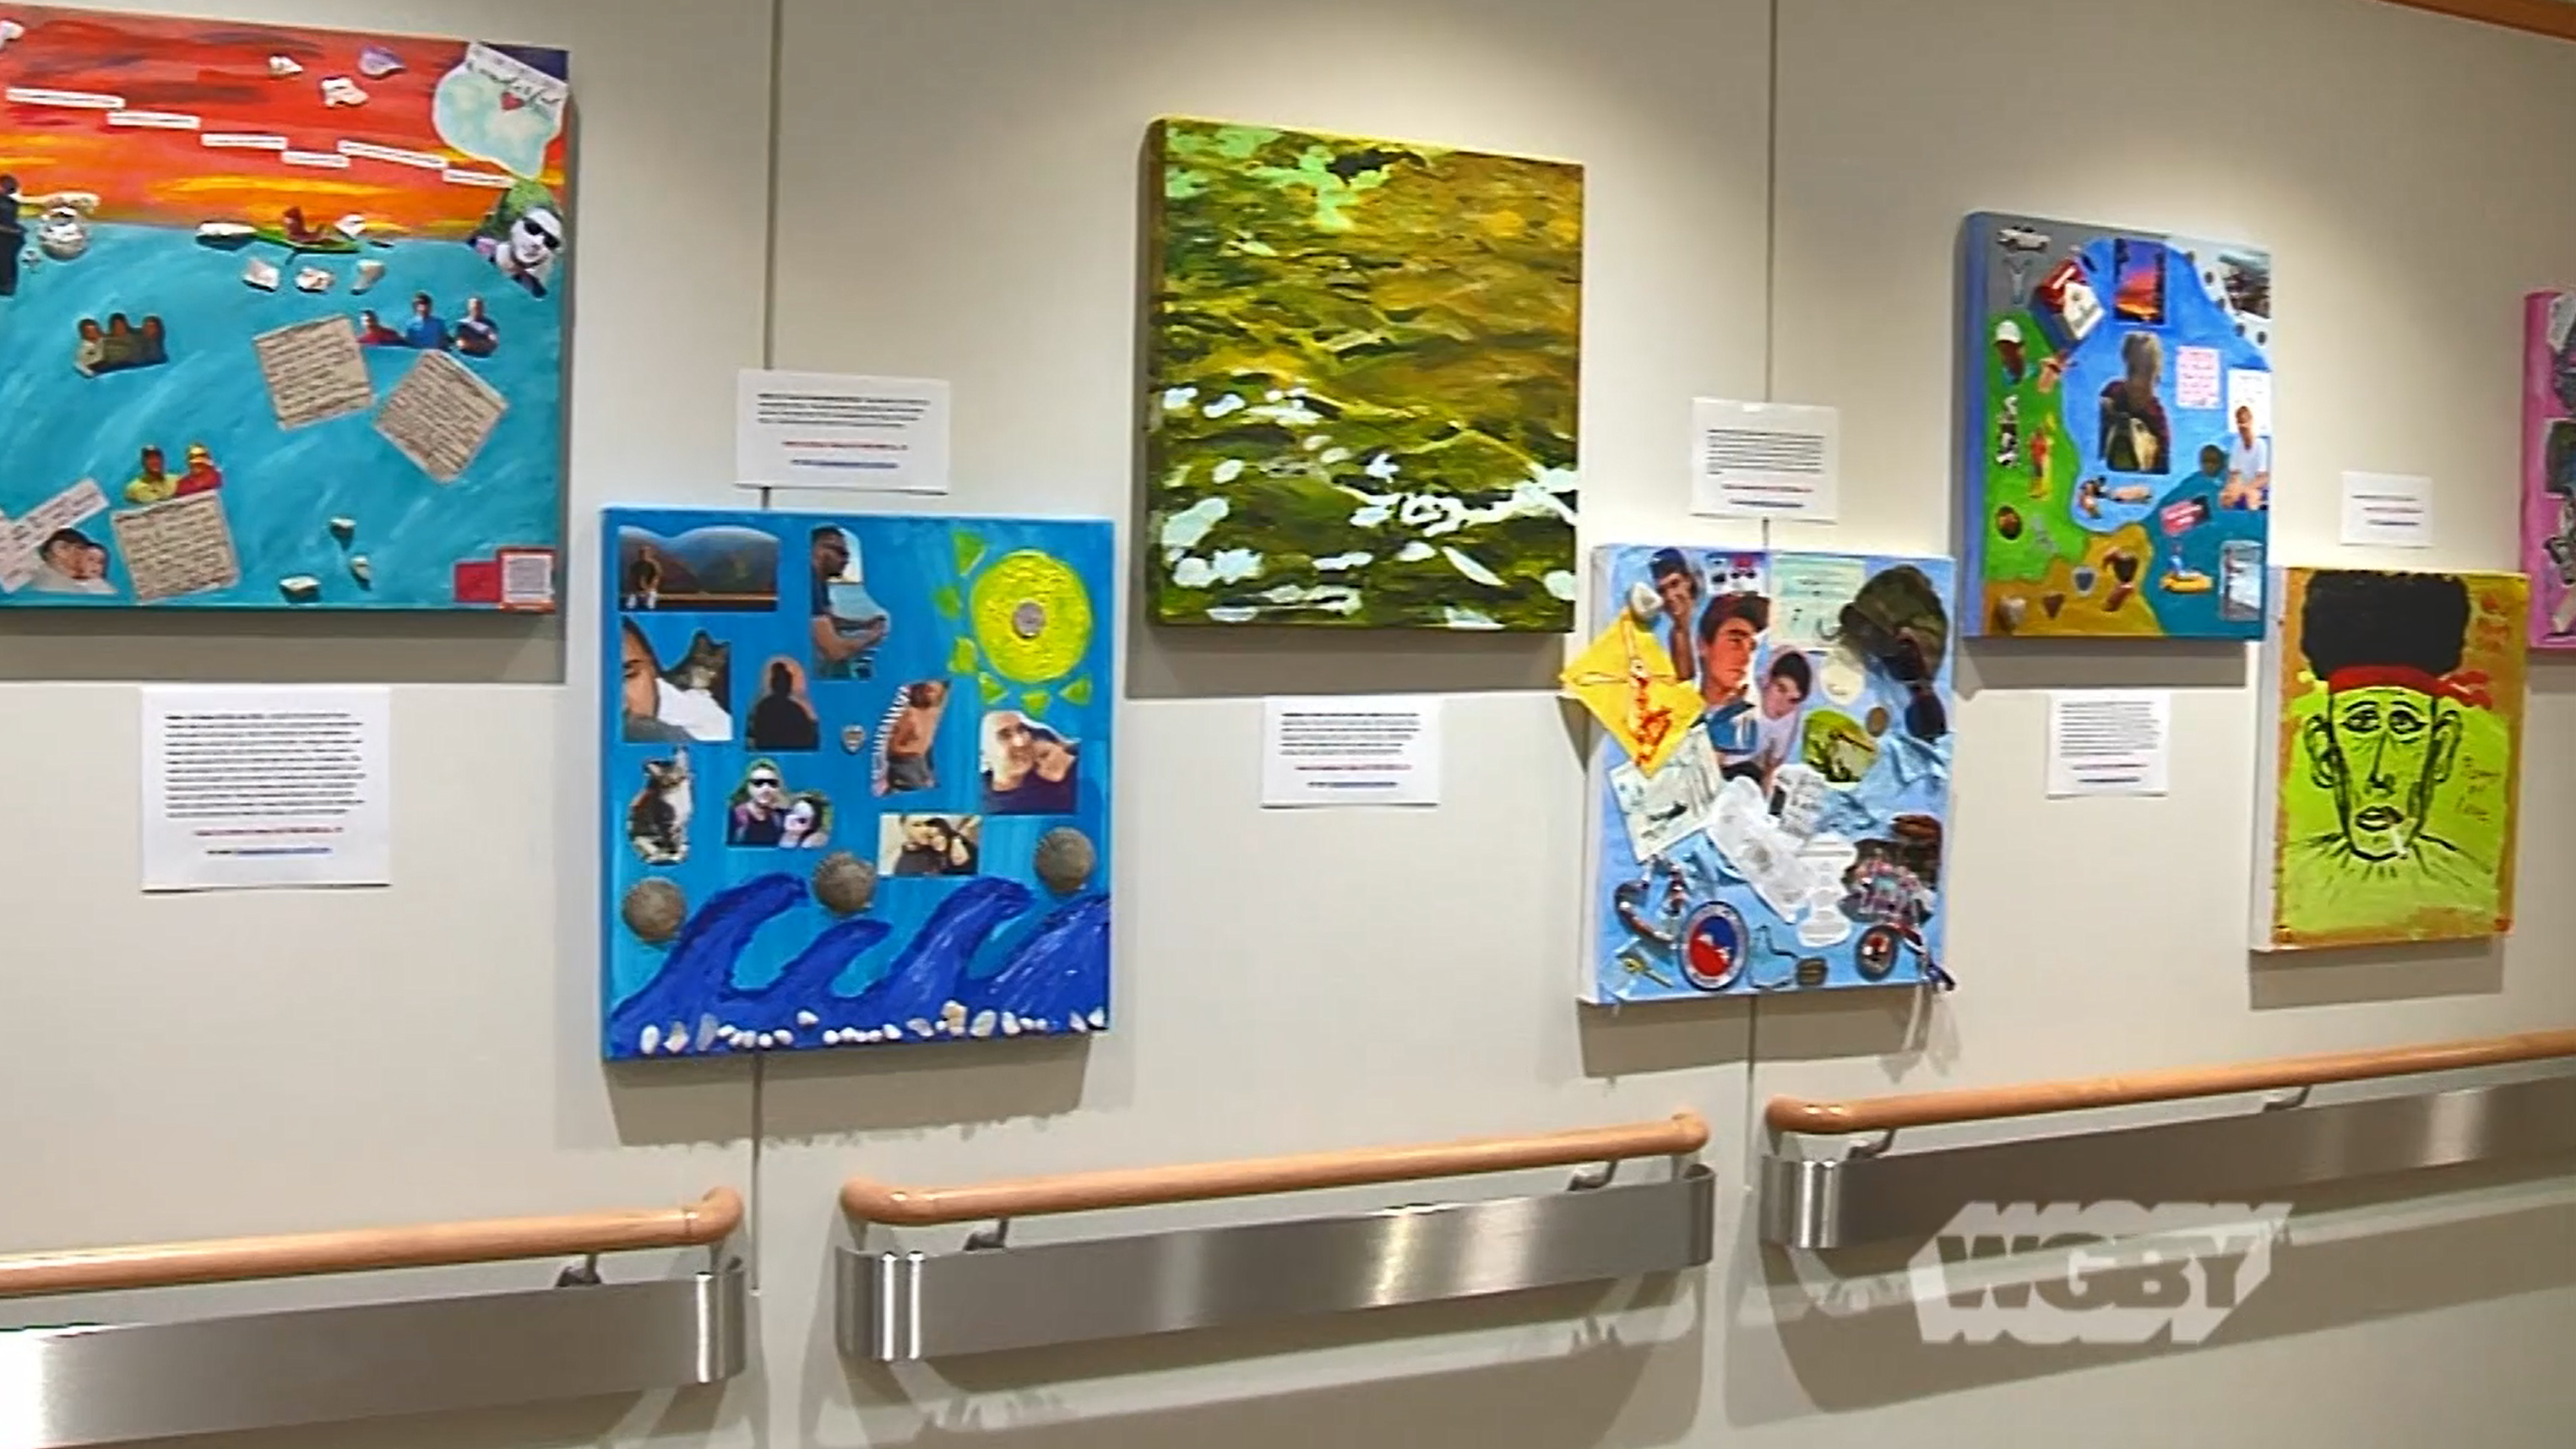 The Opioid Project: Change Perceptions through Art & Storytelling